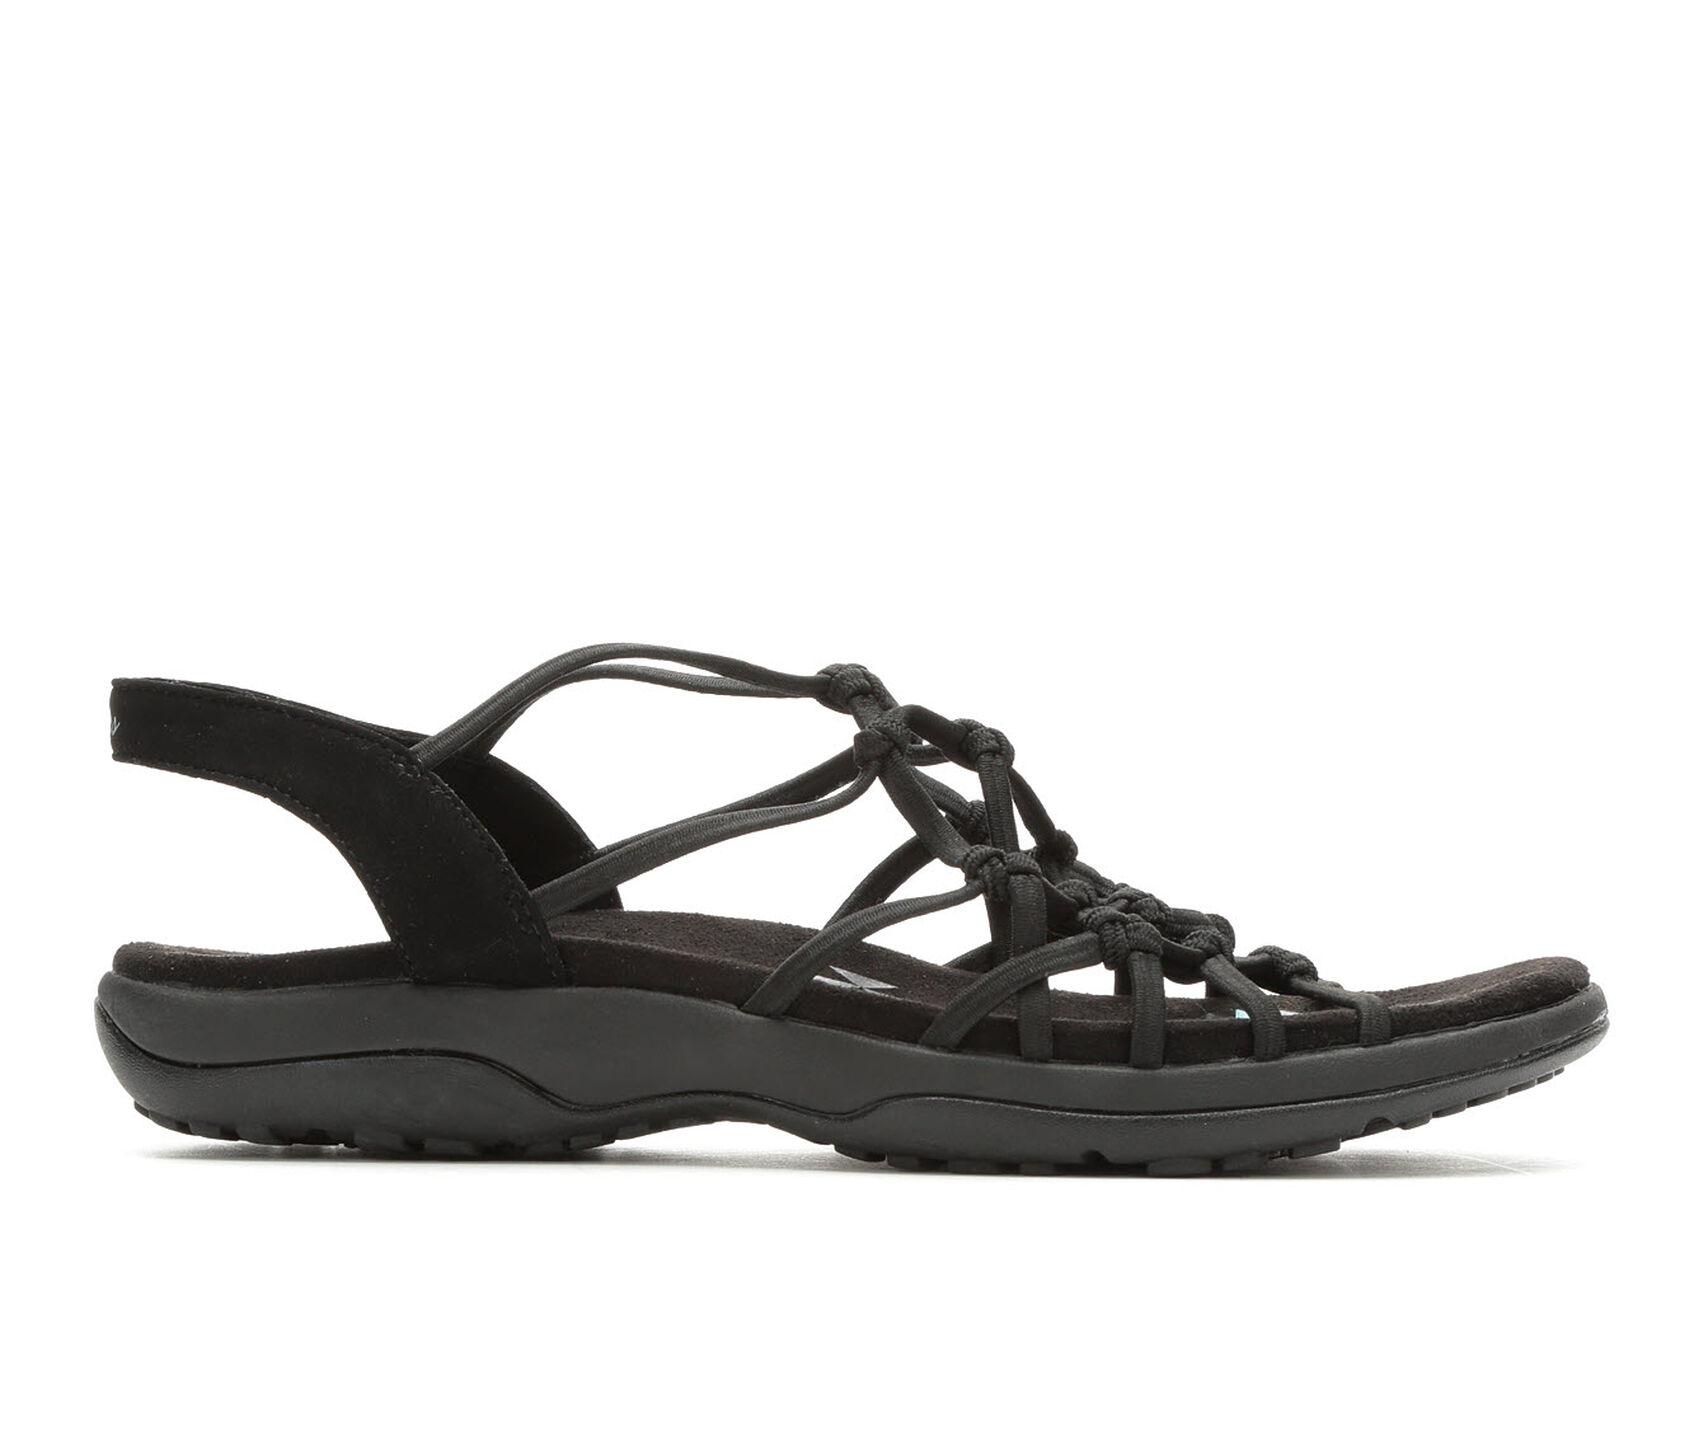 b9dd8ca851f1 ... Skechers Reggae Slim Forget Me Knot Hiking Sandals. Previous